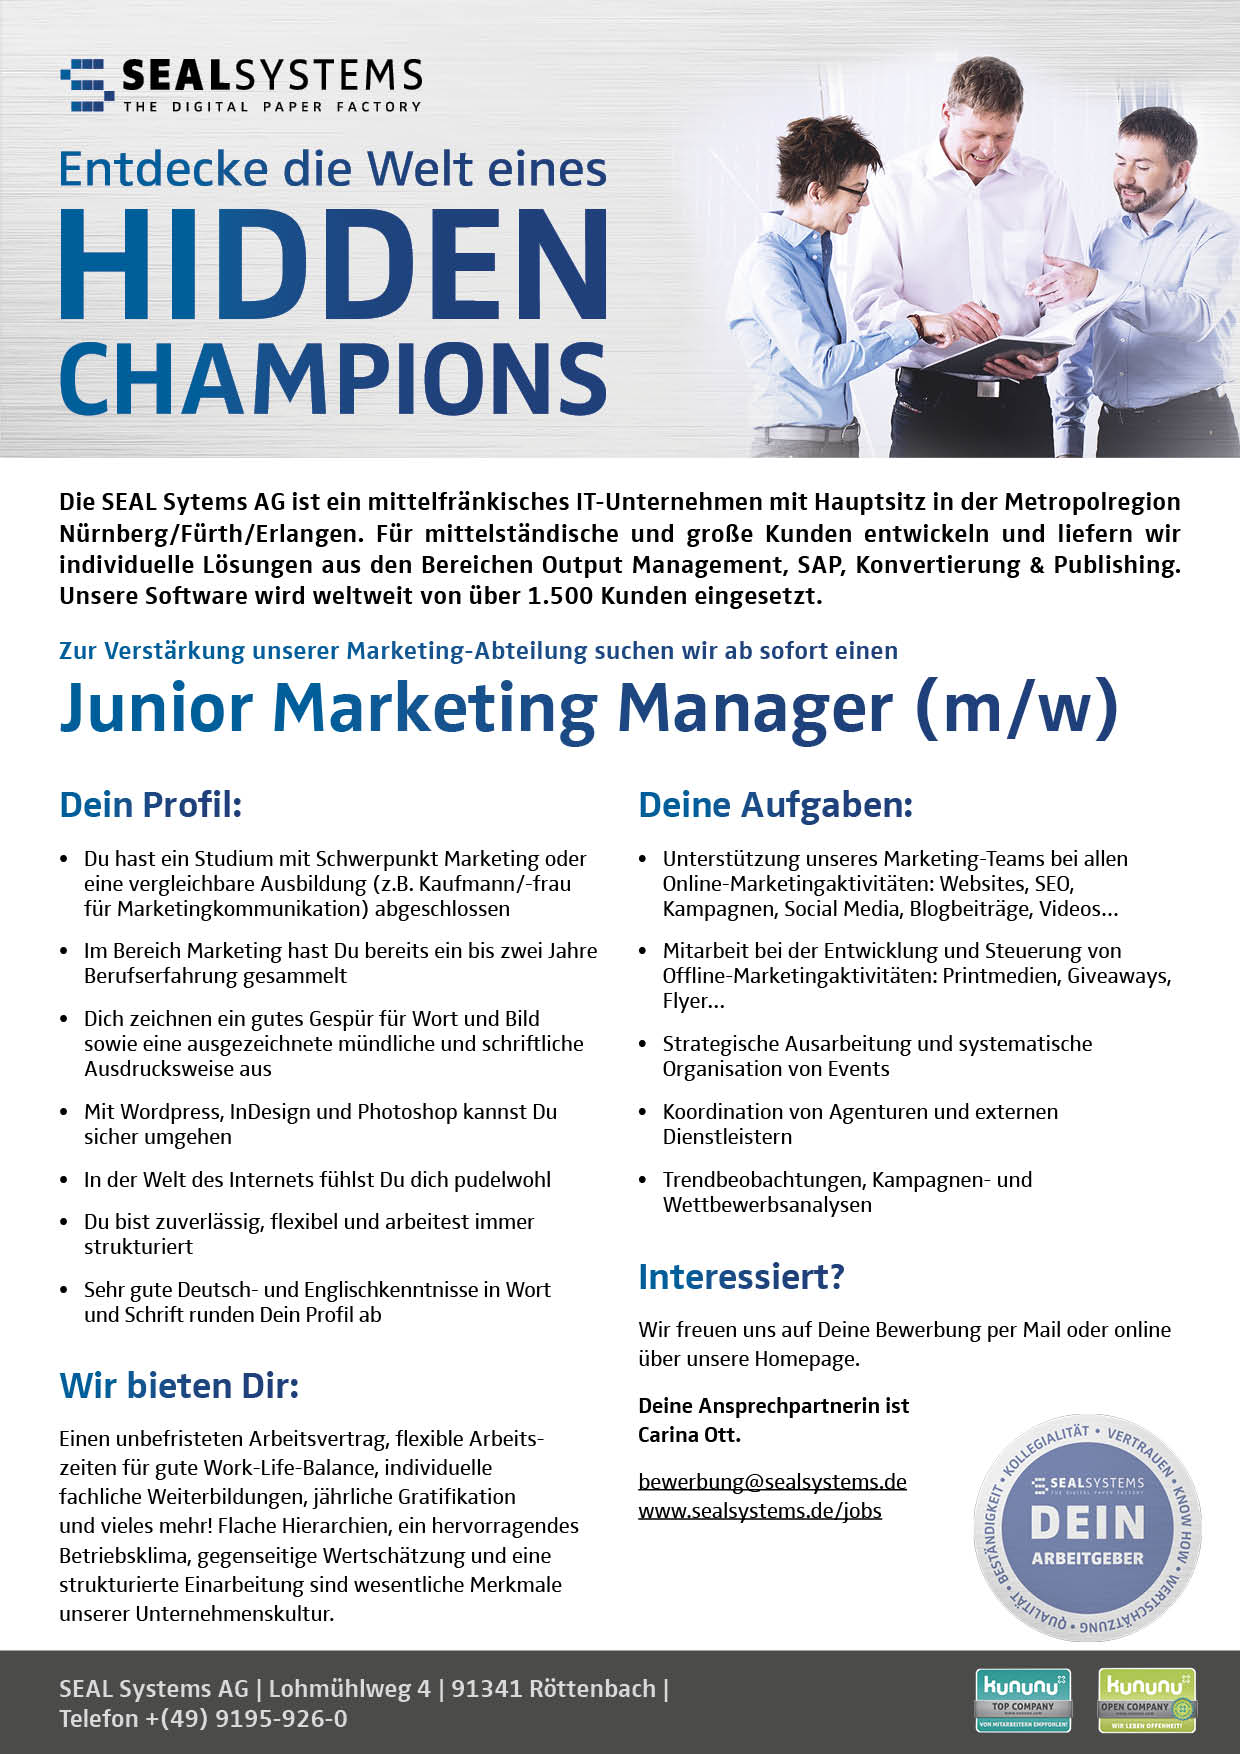 2018-06-16-Junior-Marketing-Manager Jobangebot: Junior Marketing Manager (m/w) in Erlangen gesucht